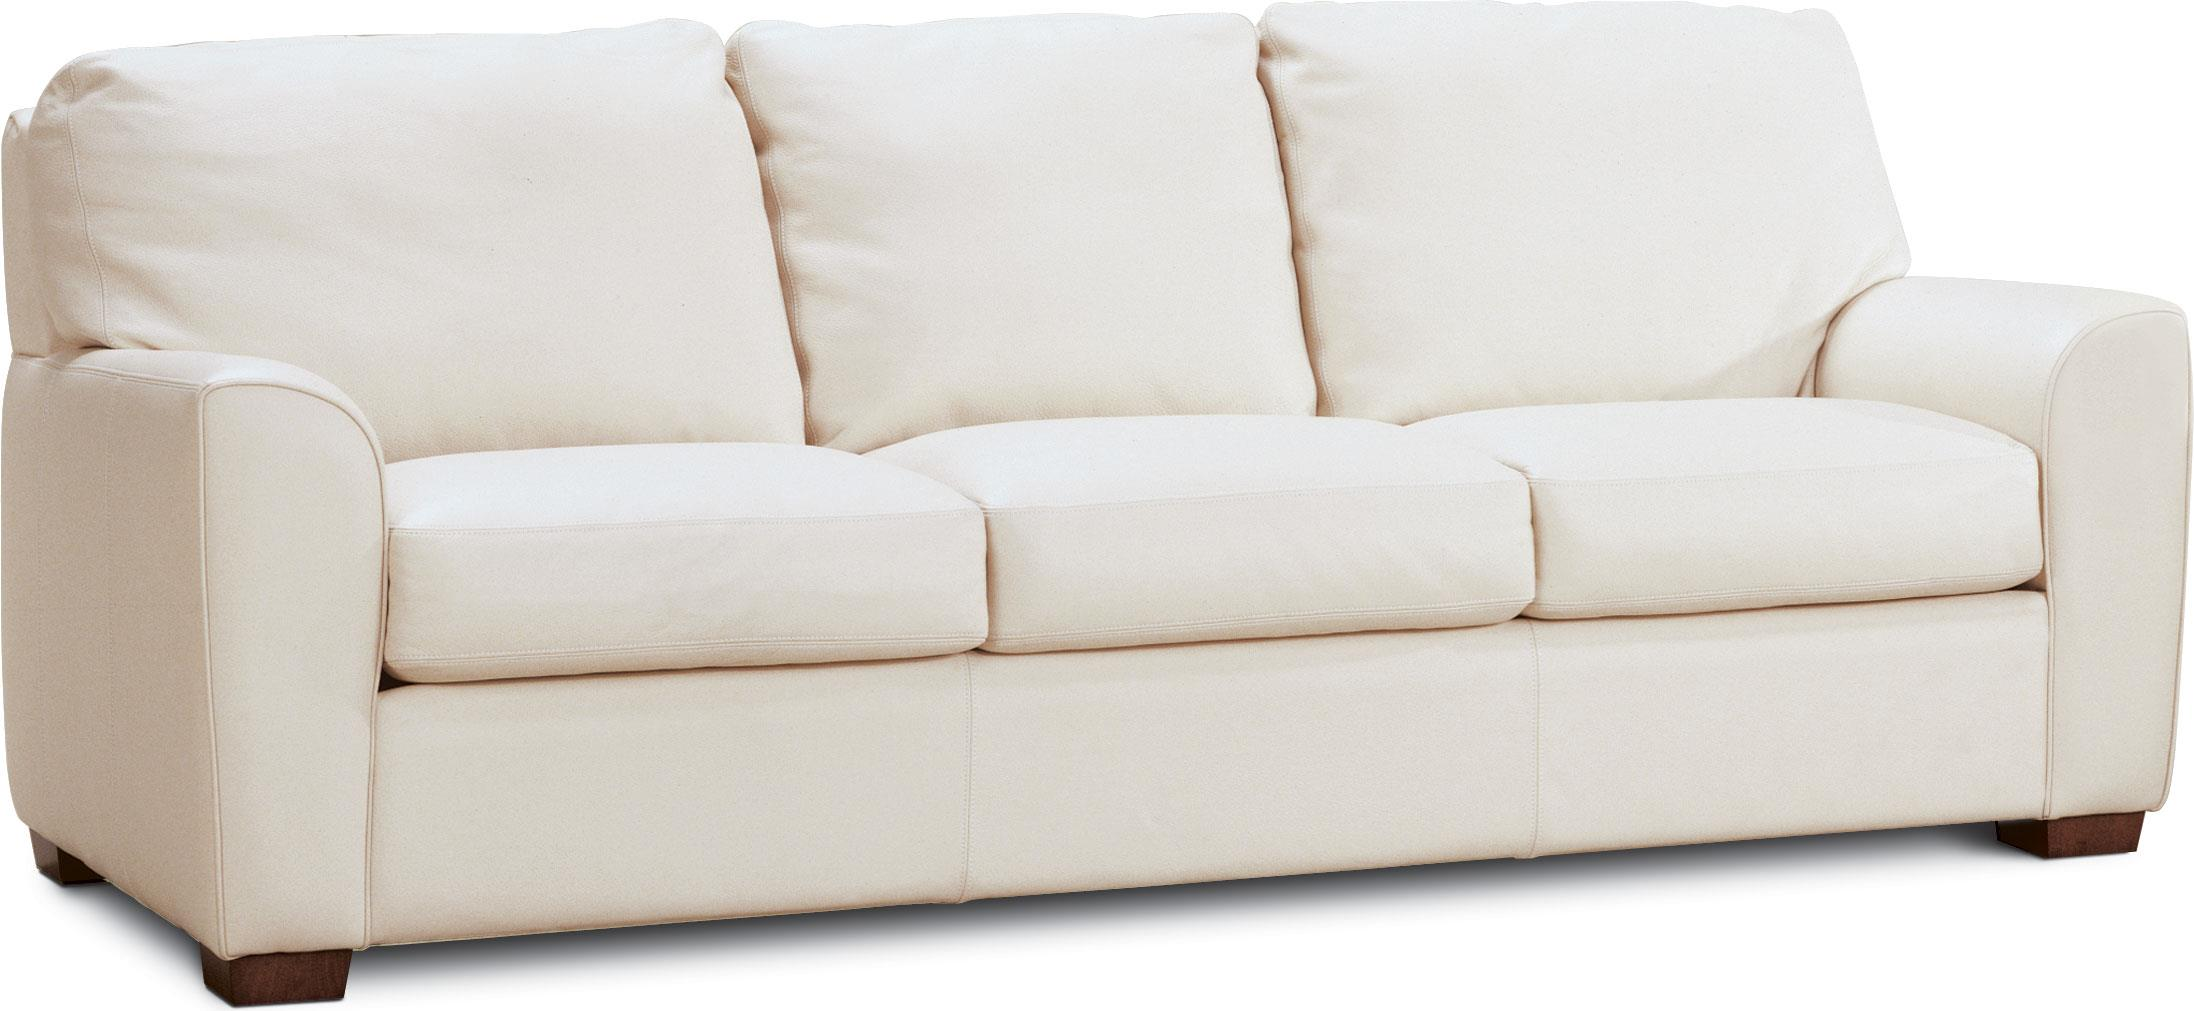 American Leather Kaden Sofa - Item Number: KAD-SO3-ST-ULT5912